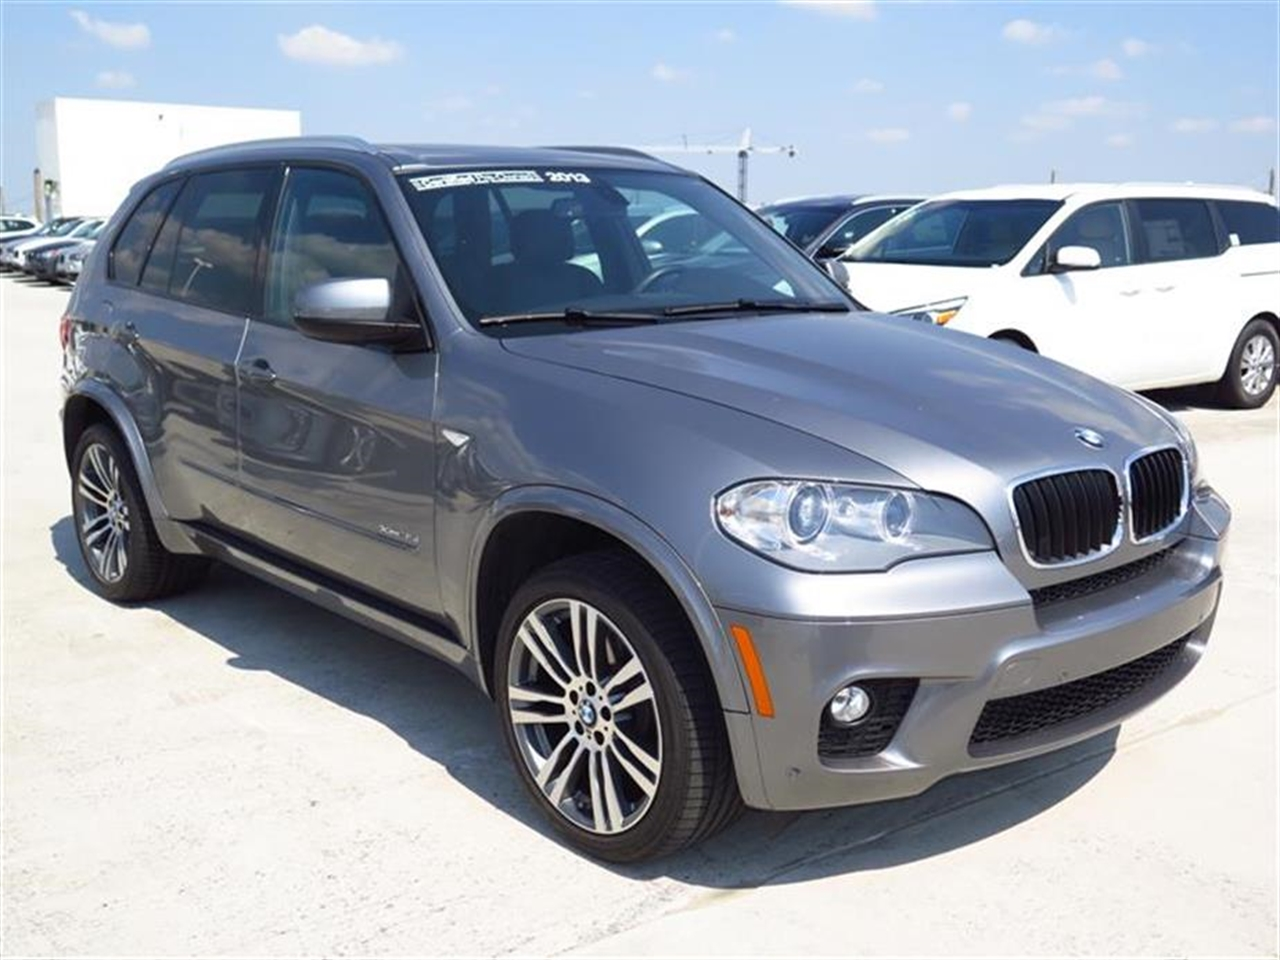 2013 BMW X5 AWD 4dr xDrive35i 28965 miles 10-way power-adjustable drivers and passengers seat -in